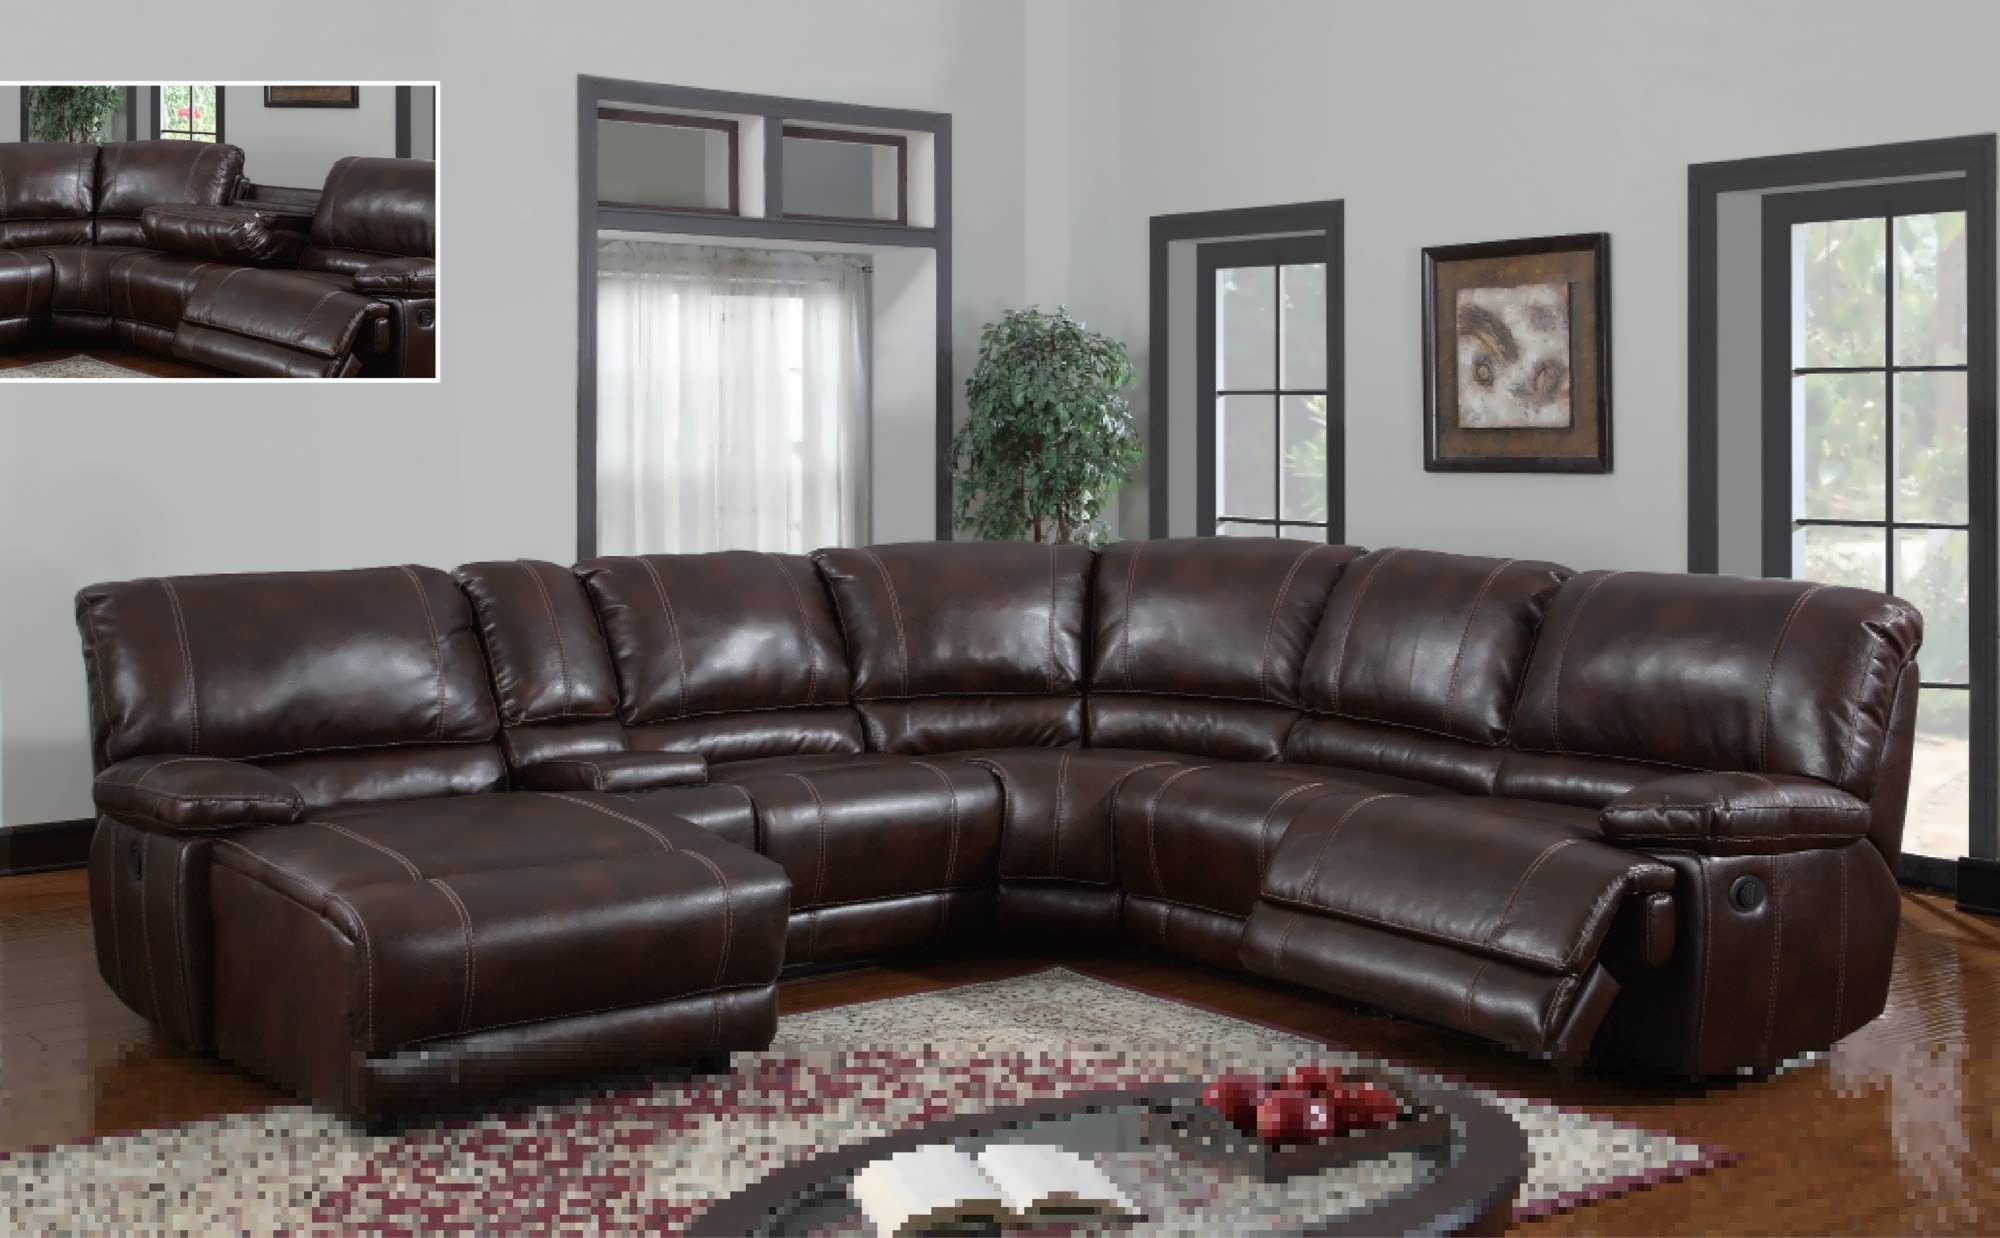 Sofa : Small Leather Sectional Modern Sectional Living Room In 2018 Genuine Leather Sectionals With Chaise (View 14 of 15)